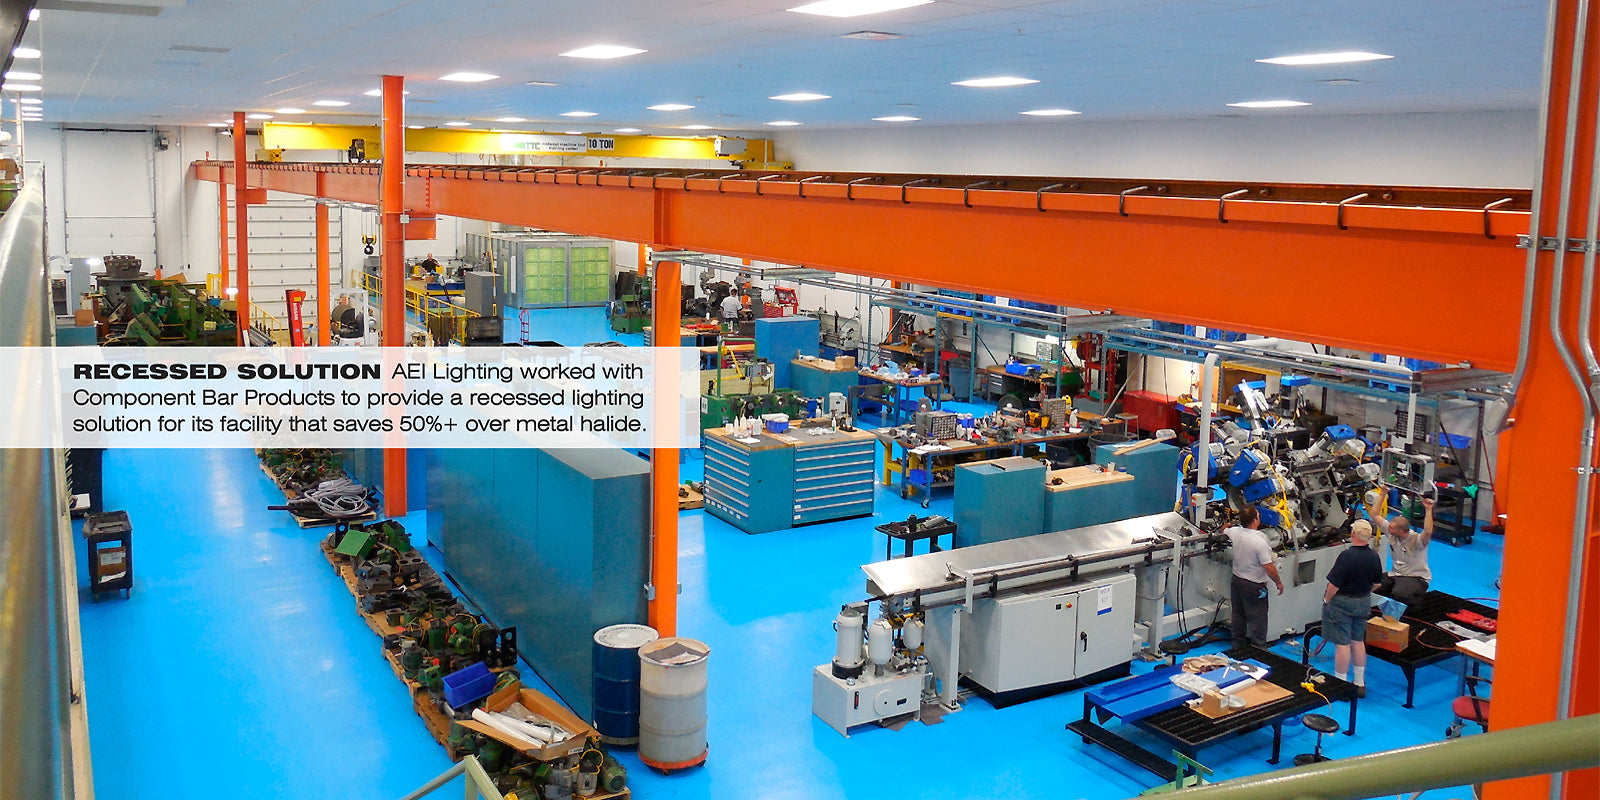 AEI Lighting's LED Fixtures for Industrial, Commercial and Retail Applications